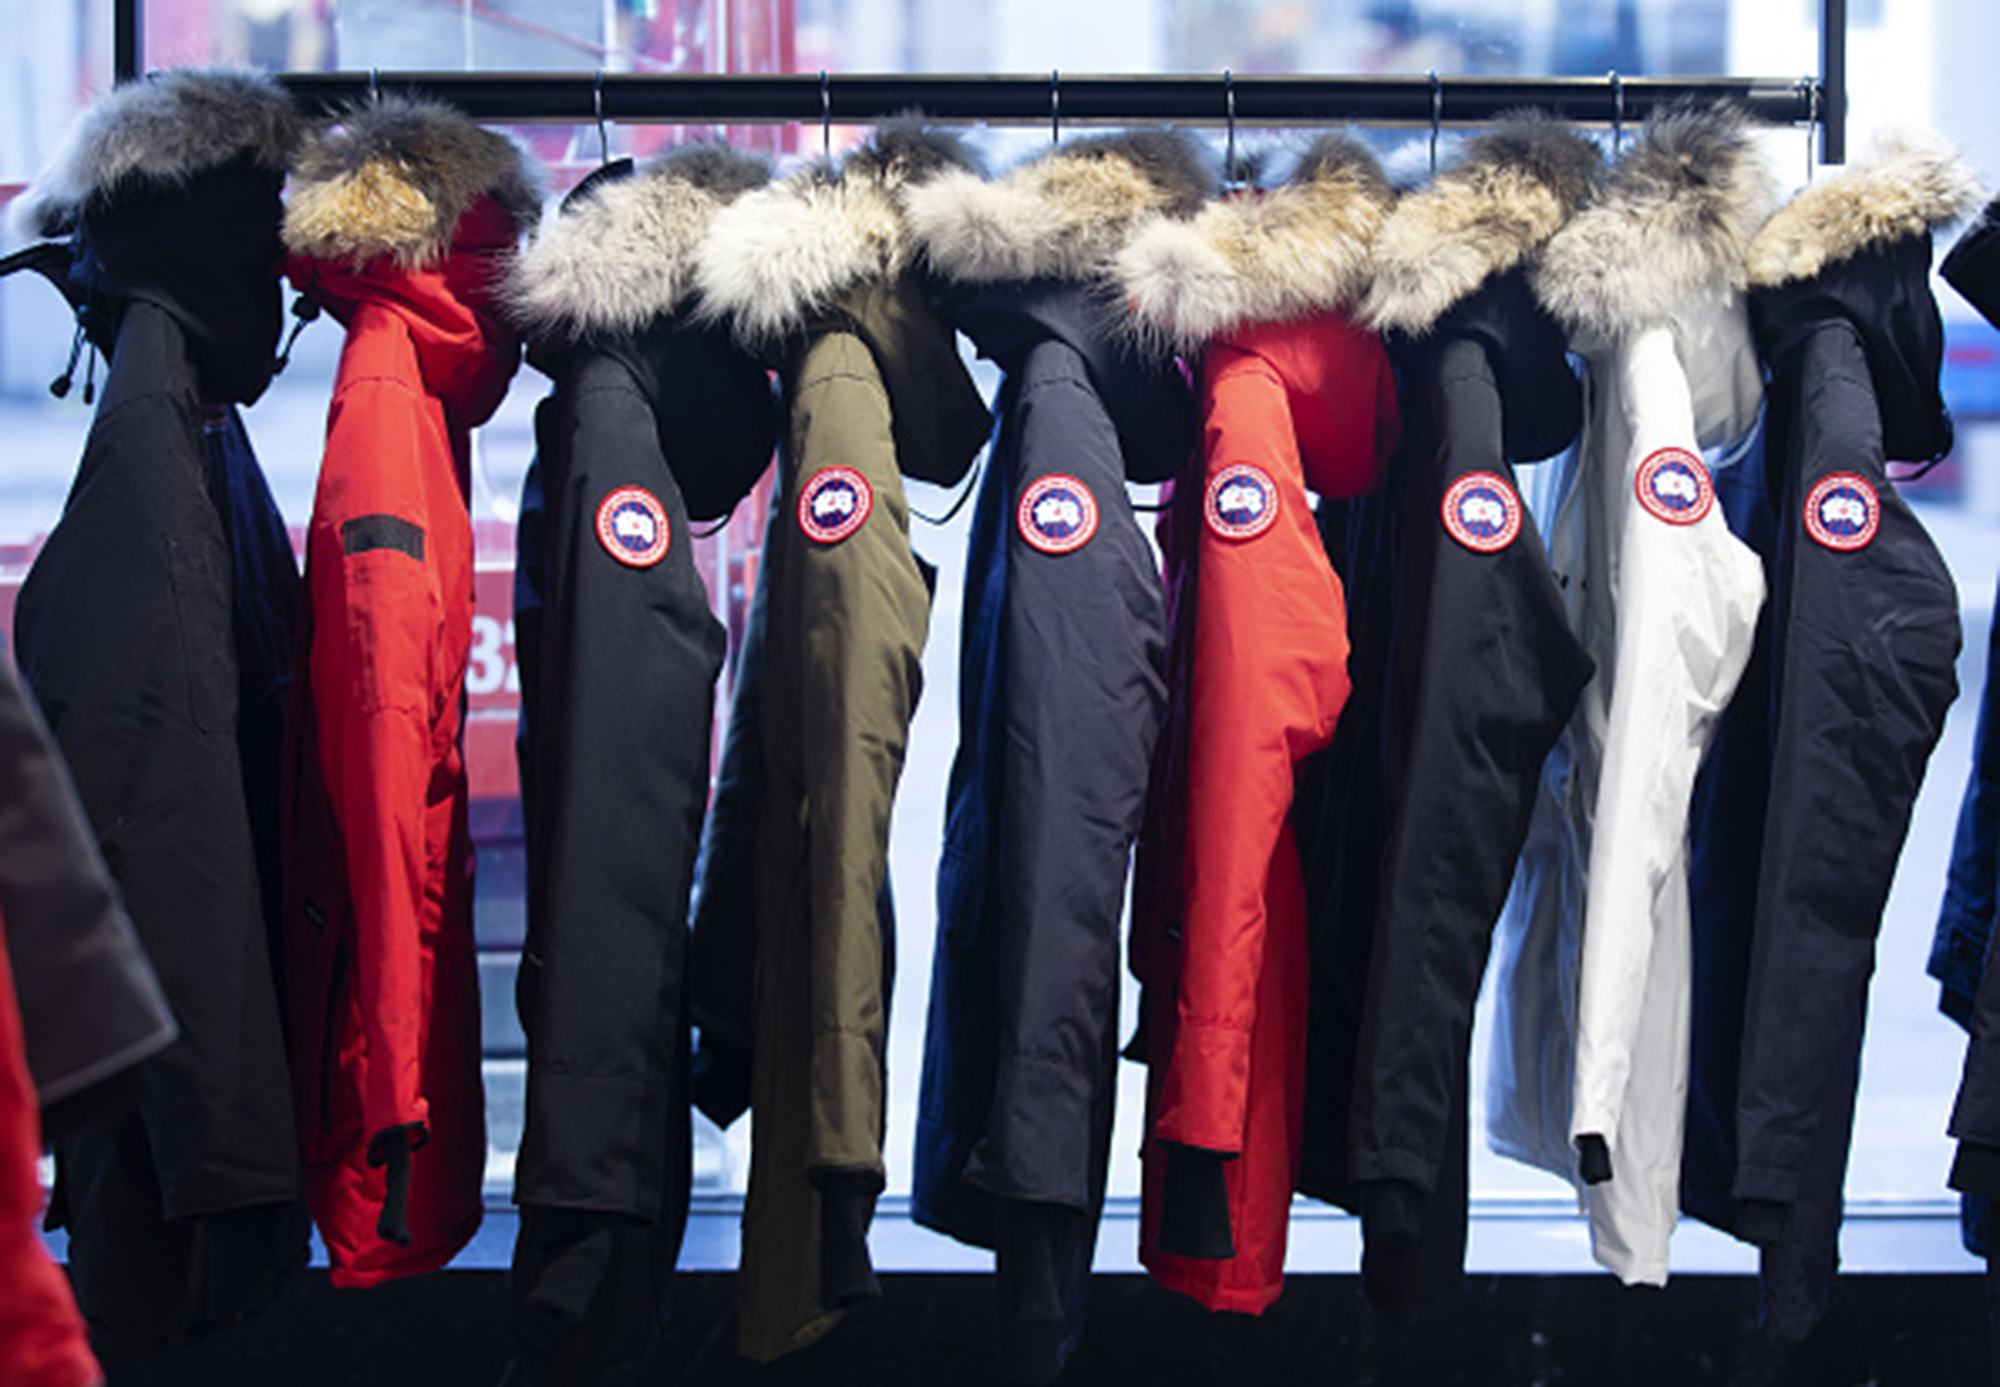 Canada Goose Expected To Markdown Jacket Prices For Holidays